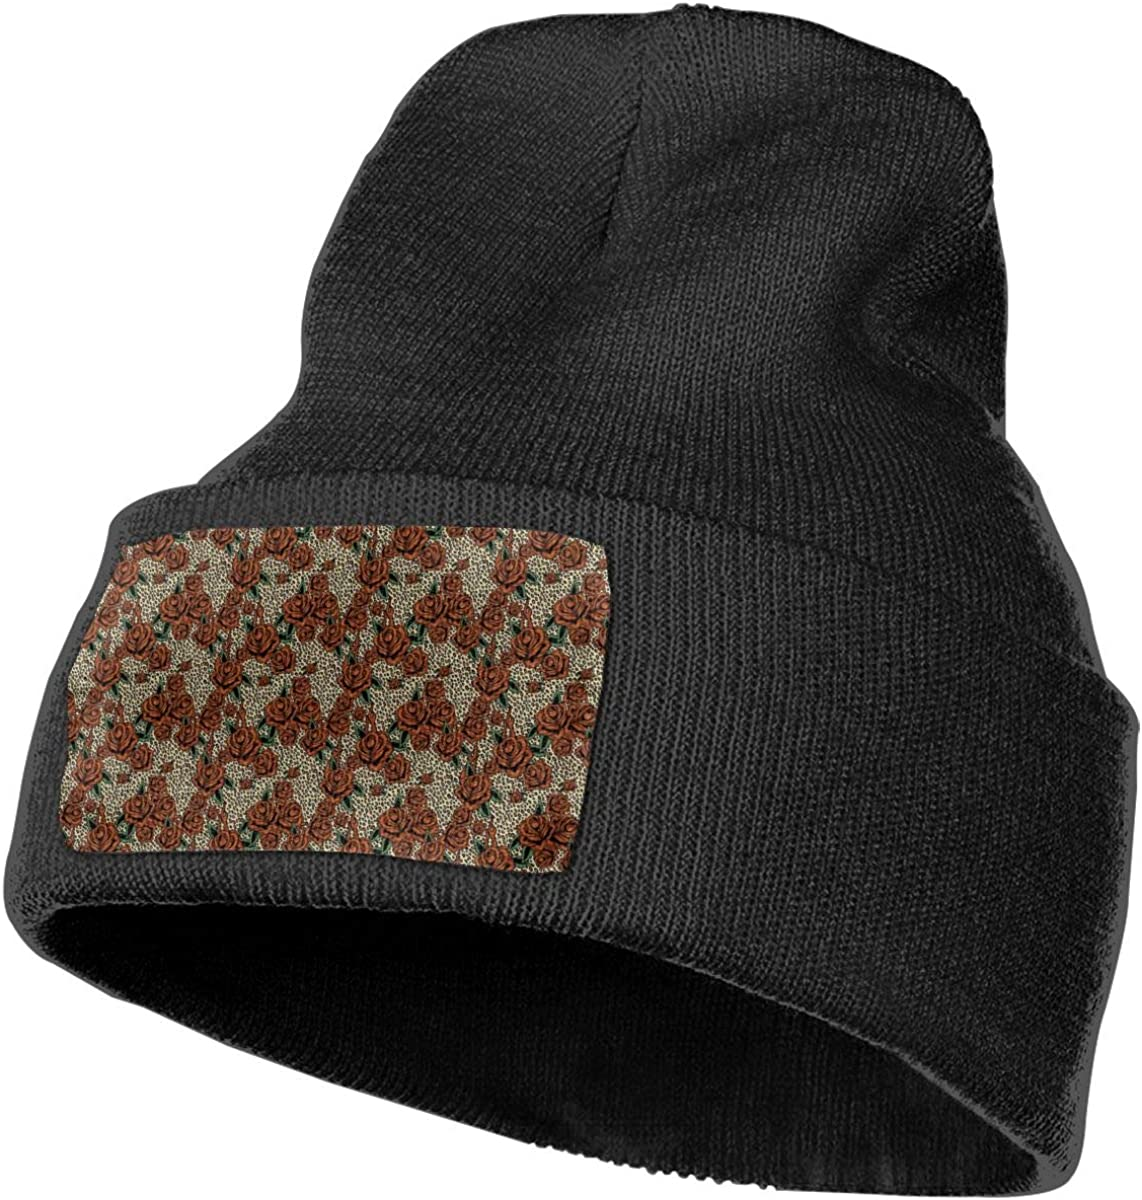 Adults Red Roses Leopard Print Elastic Knitted Beanie Cap Winter Warm Skull Hats